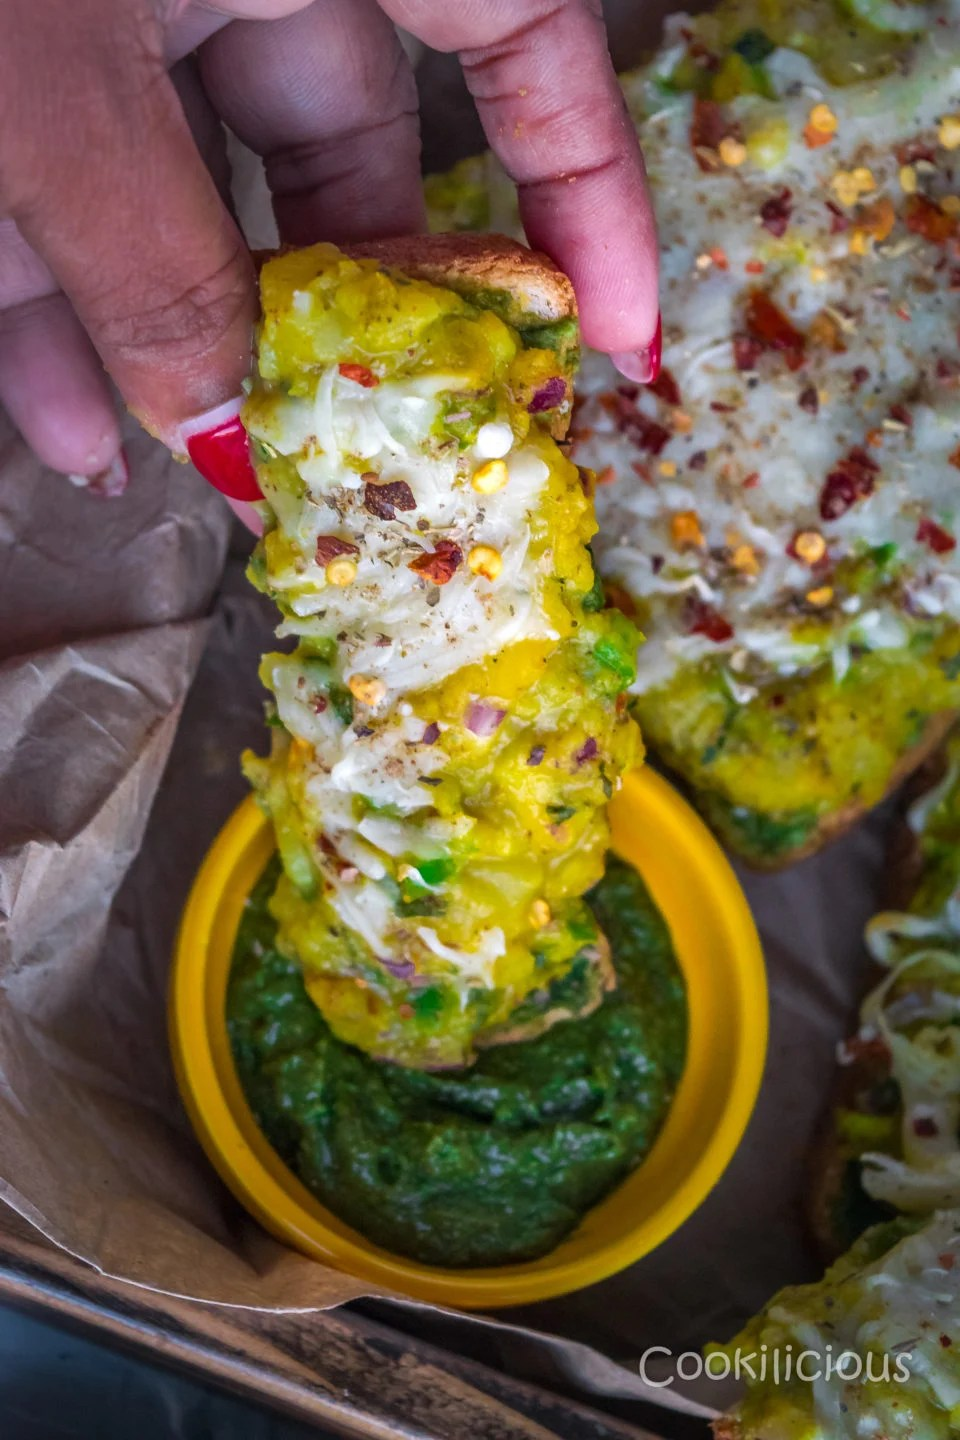 A hand holding a slice of Potato Chilly Garlic Masala Toast and dipping it in green chutney